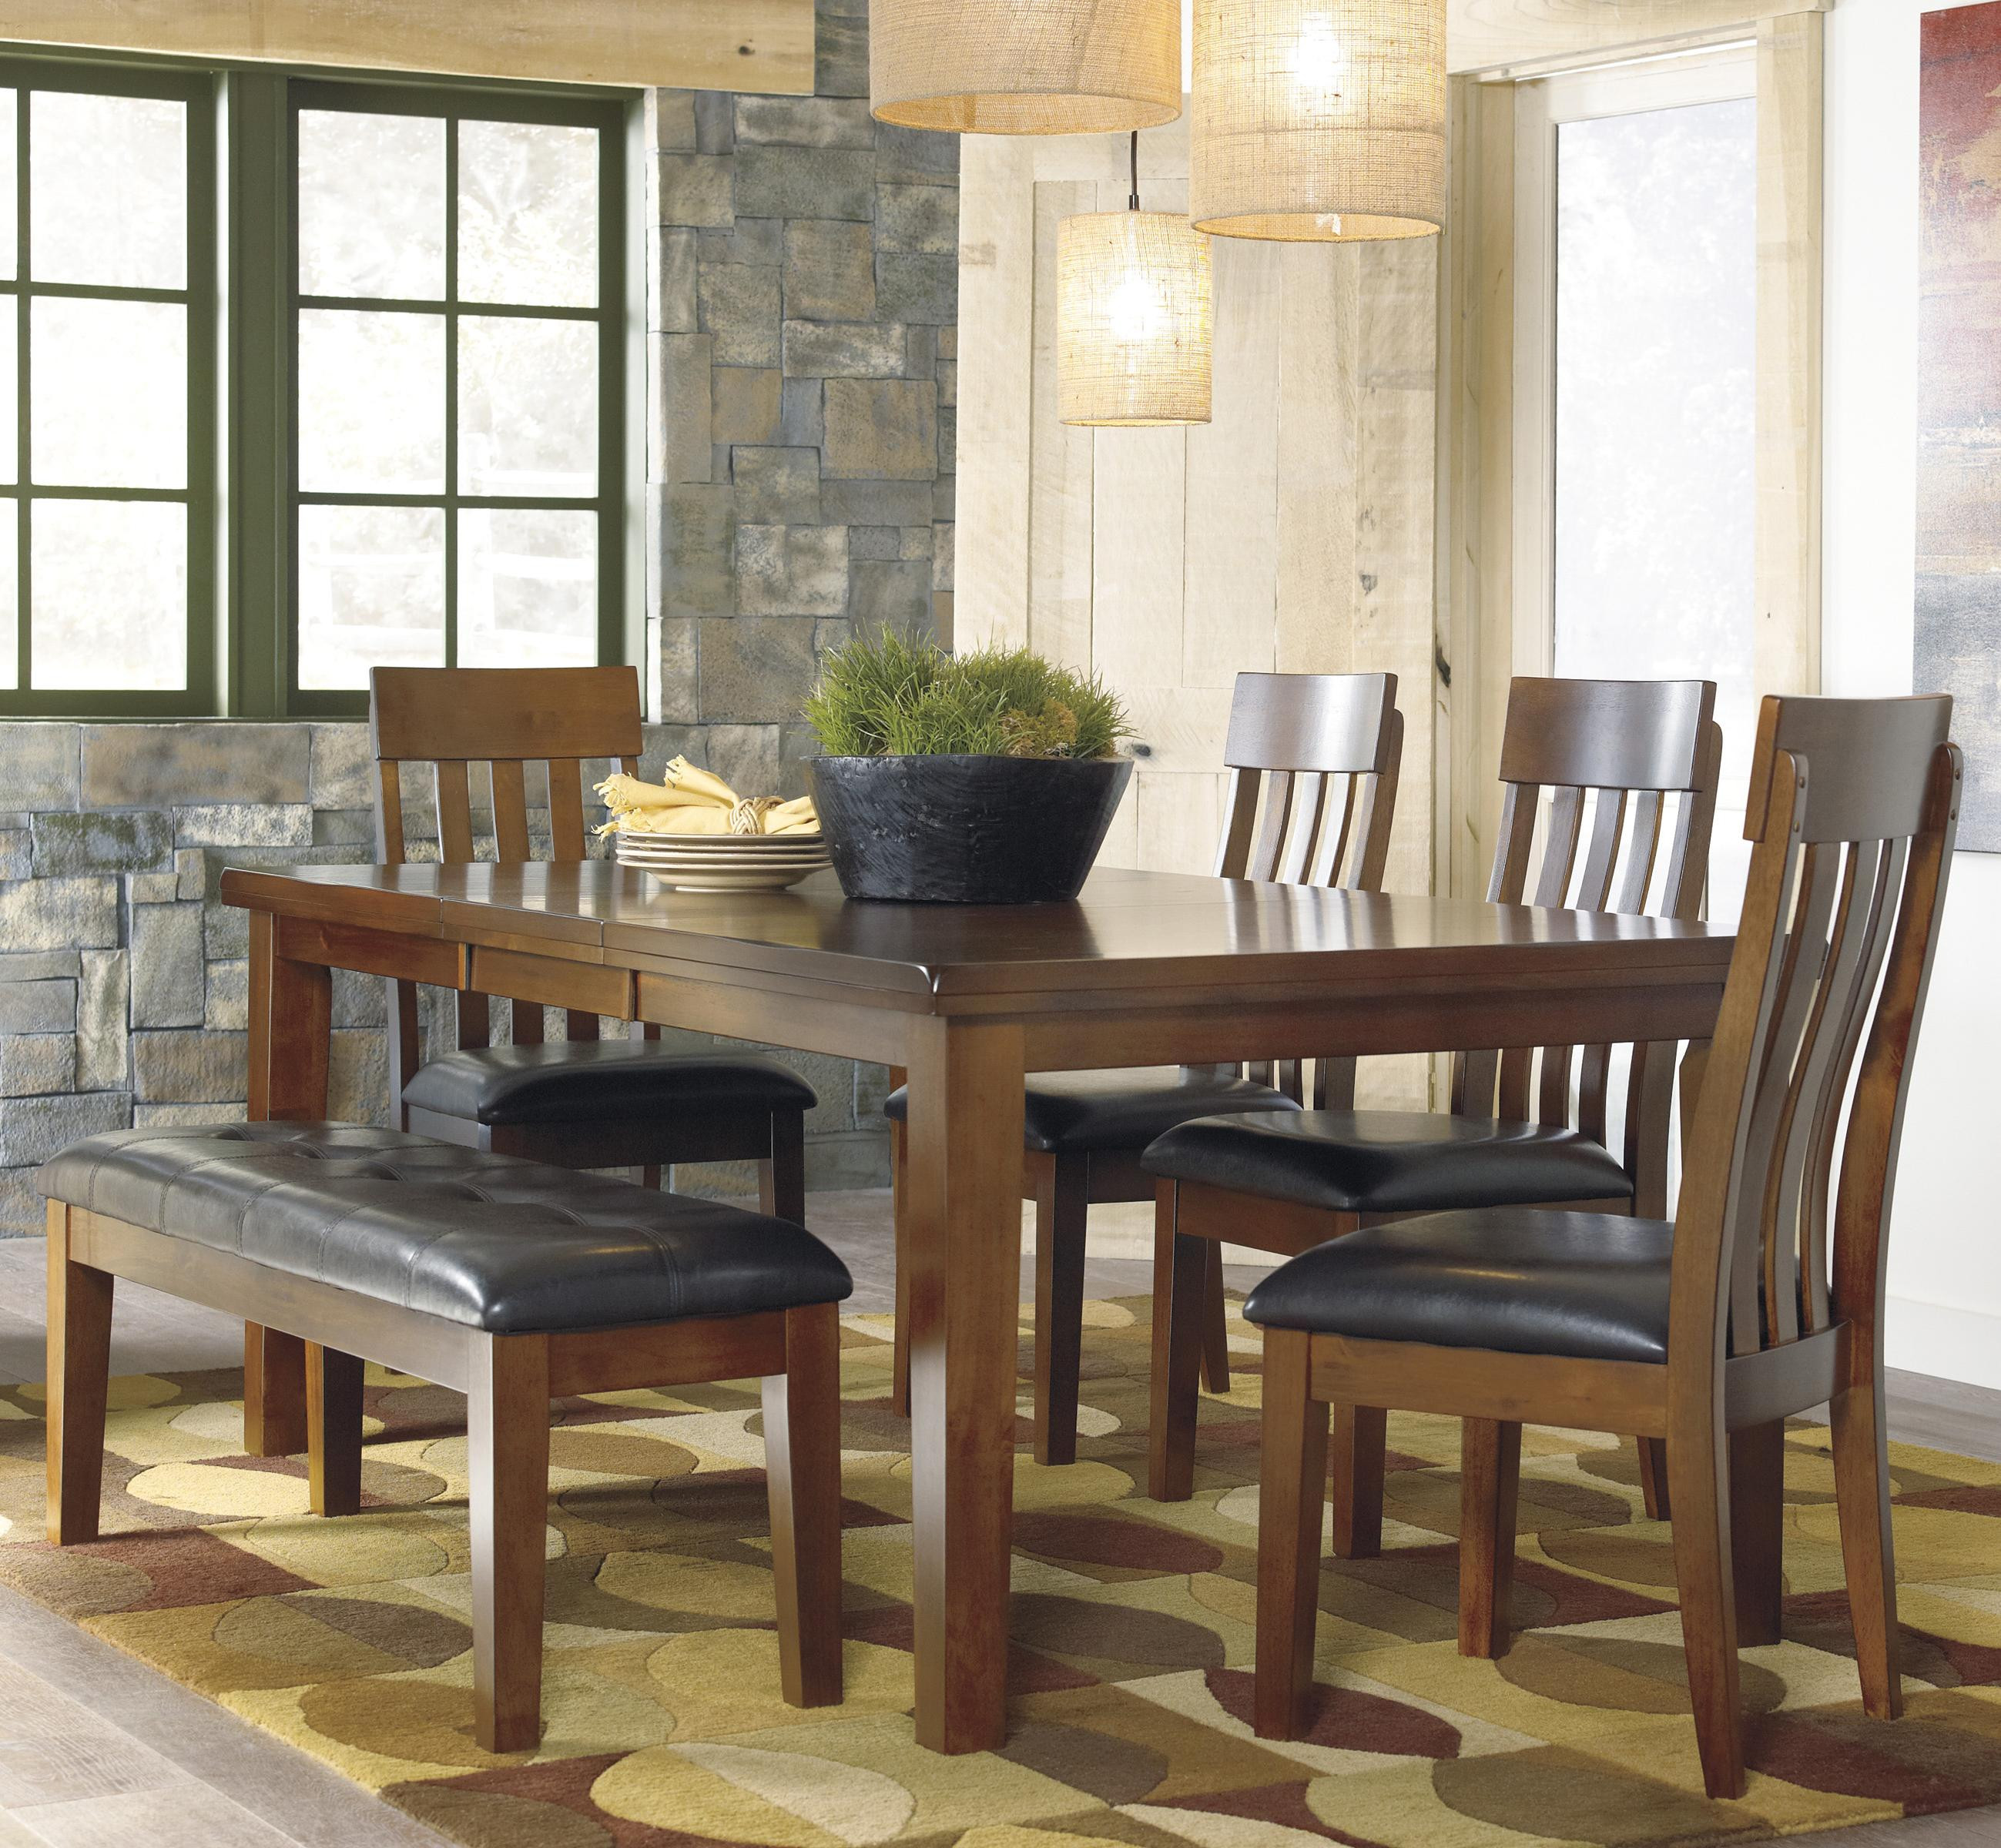 Best ideas about Ashley Furniture Dining Sets . Save or Pin Signature Design by Ashley Furniture Ralene Casual 6 Piece Now.